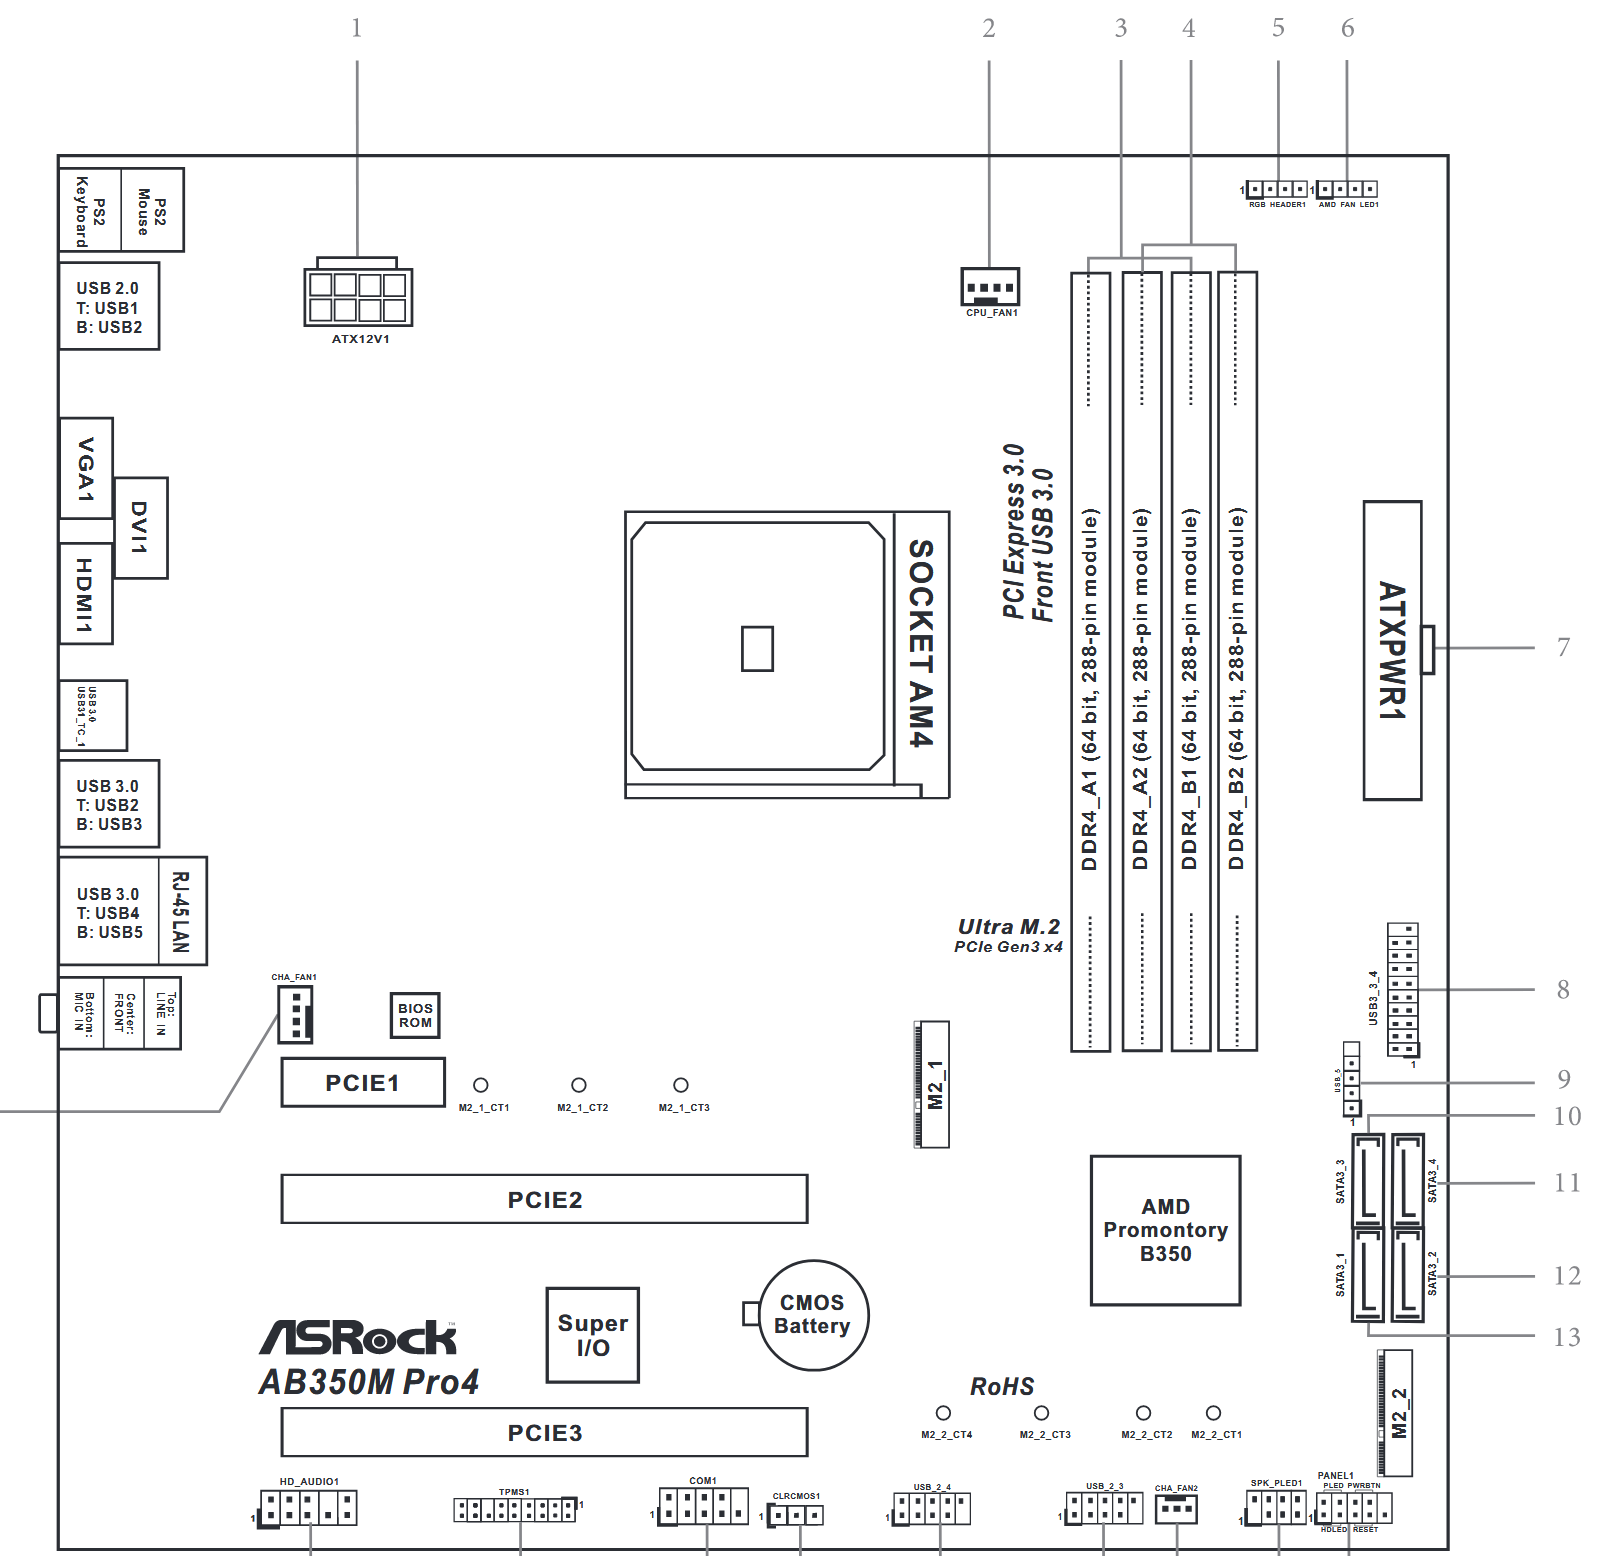 Asrock Motherboard Wiring Diagram Electrical Diagrams Ht2000 Ab350m Pro4 Micro Atx Sata Connector Position Cpus Usb Pinout